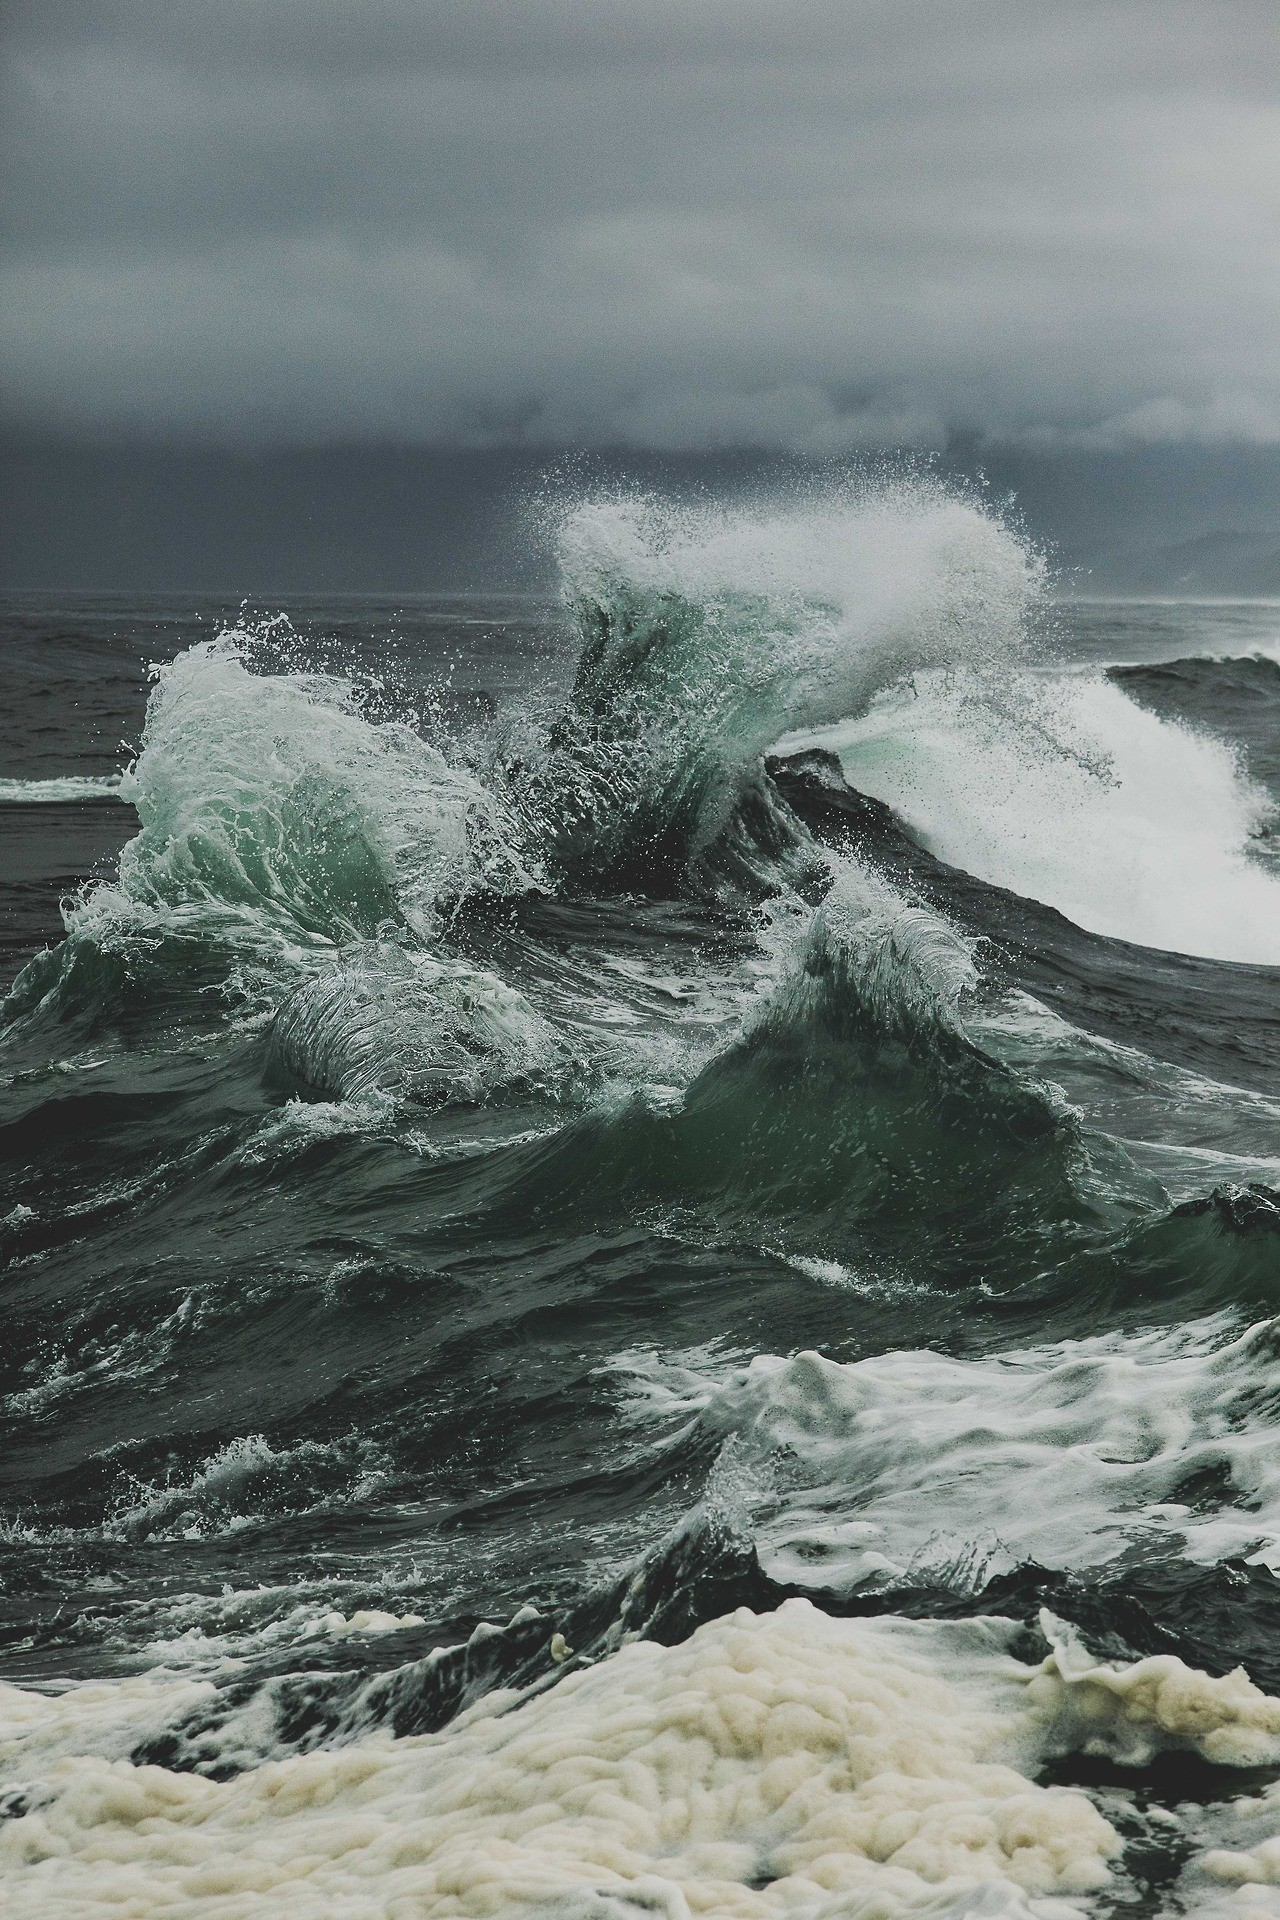 1280x1920 Cape Kiwanda, OR - photograph by This Normal Life. Sea StormSea Photography Stormy ...